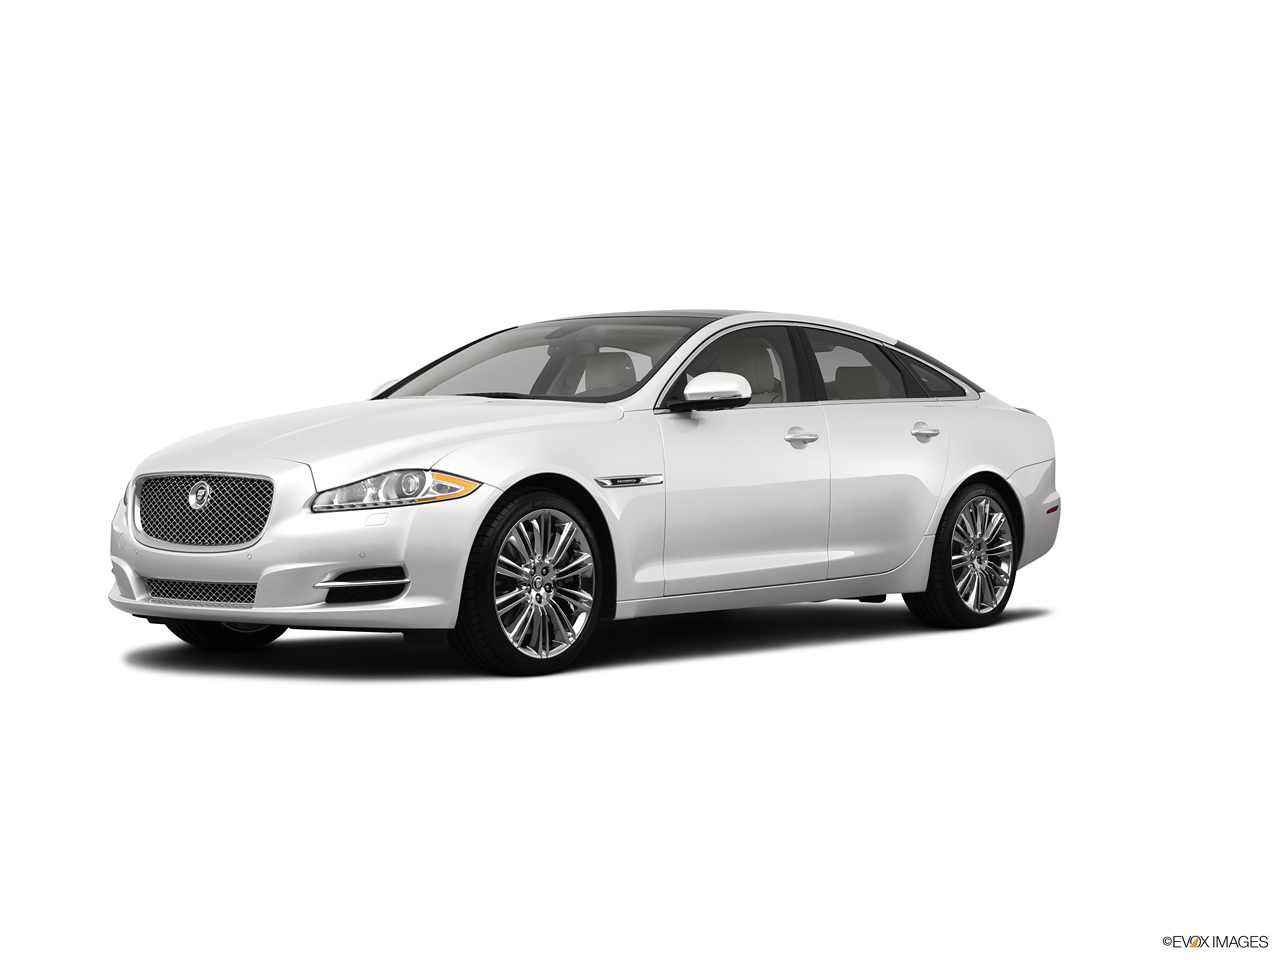 jaguar service by top rated mechanics at the convenience of your home or office [ 1280 x 960 Pixel ]